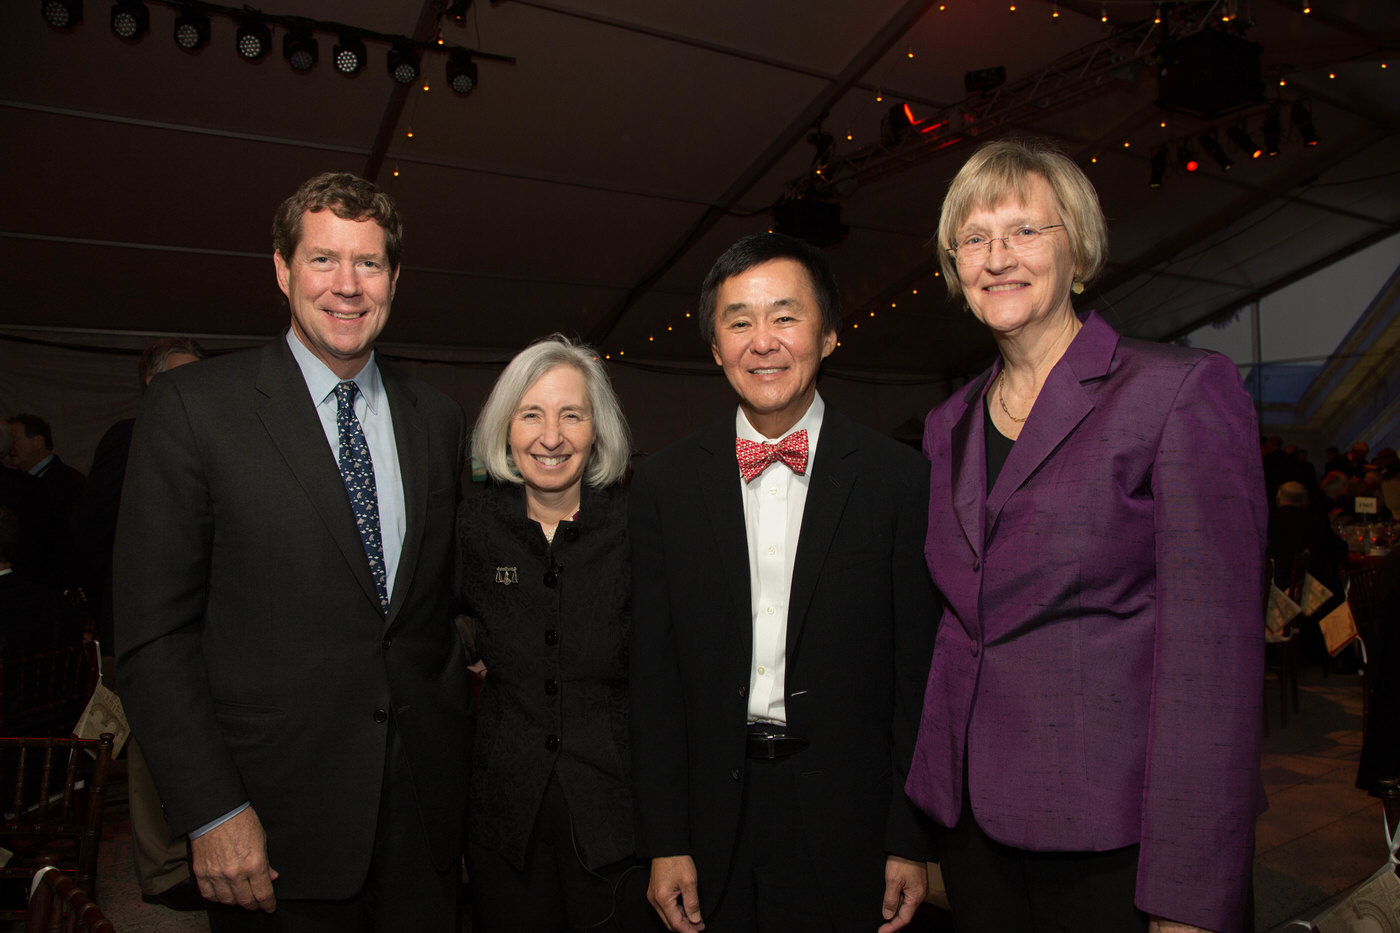 Harvard Law School Launches $305 Million Campaign for Third Century